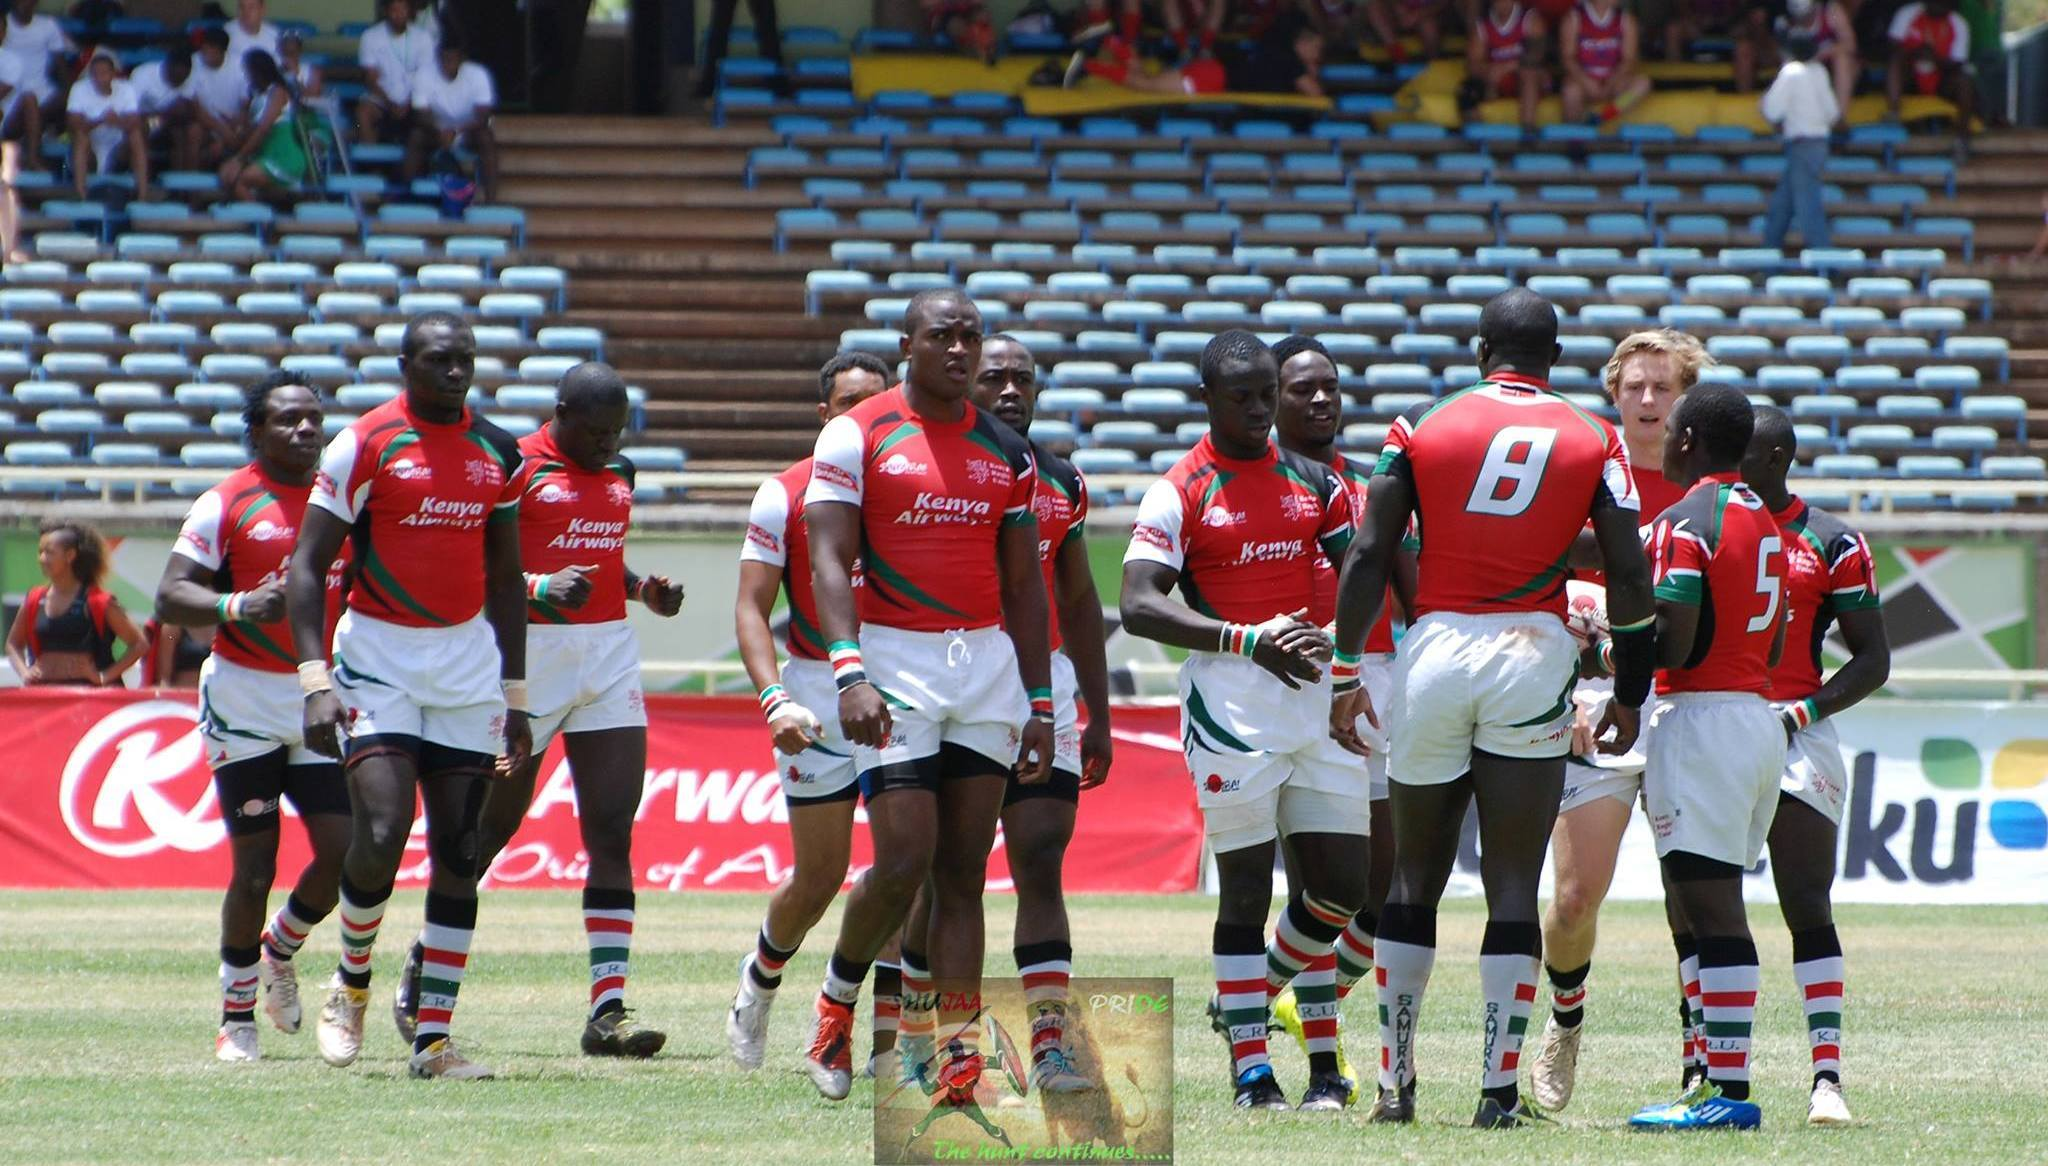 Kenya 7s squad for Africa 7s / Olympics qualifiers has been unveiled